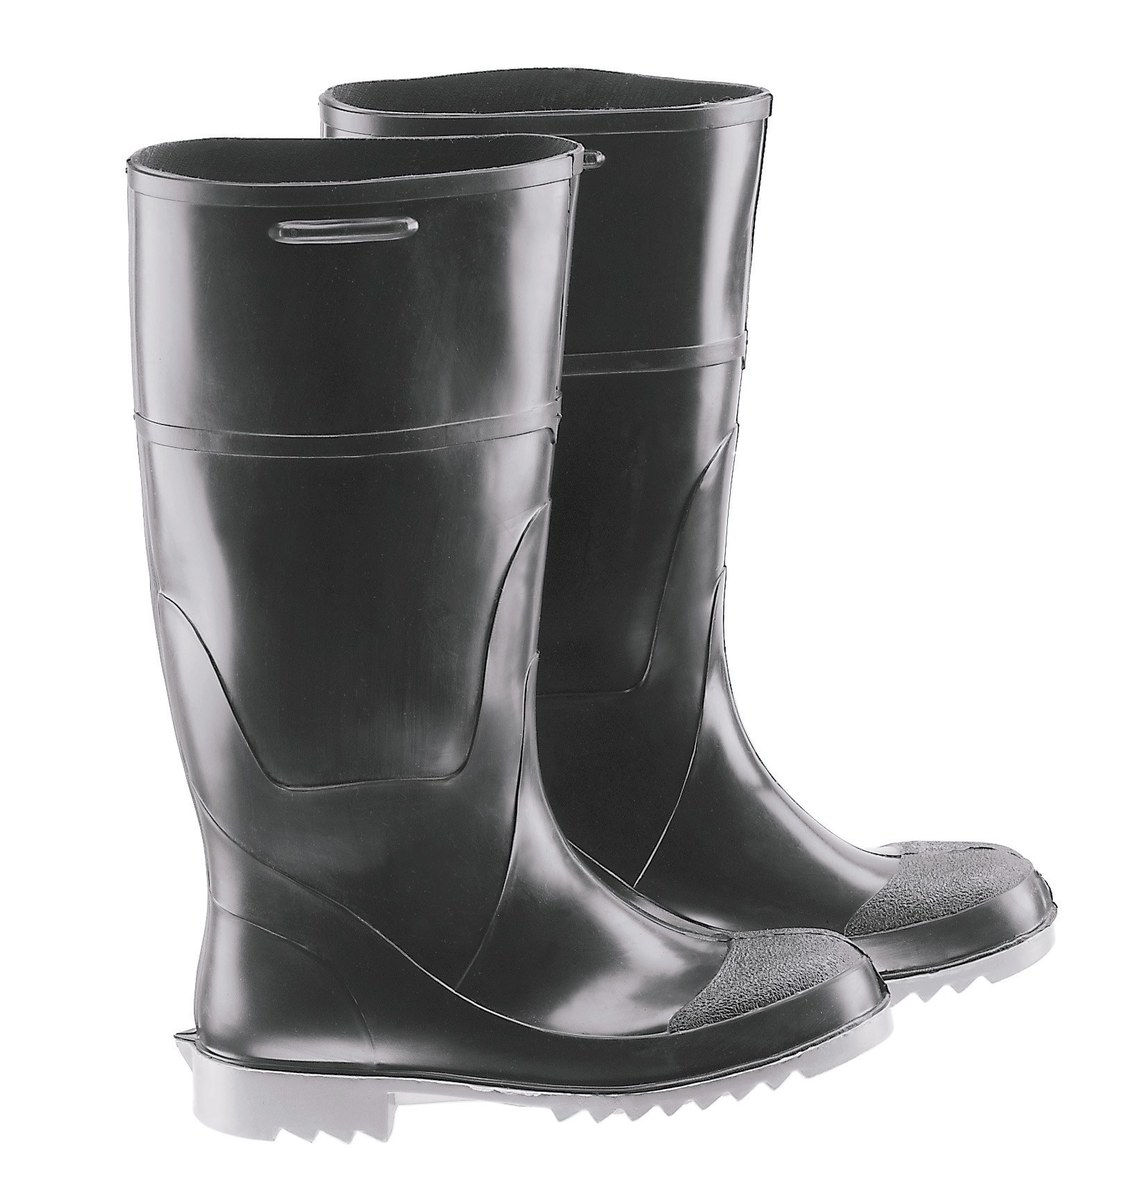 7f7032142b0 Dunlop Chemical-Resistant Boots 561310700, Size 7 (Women's ...